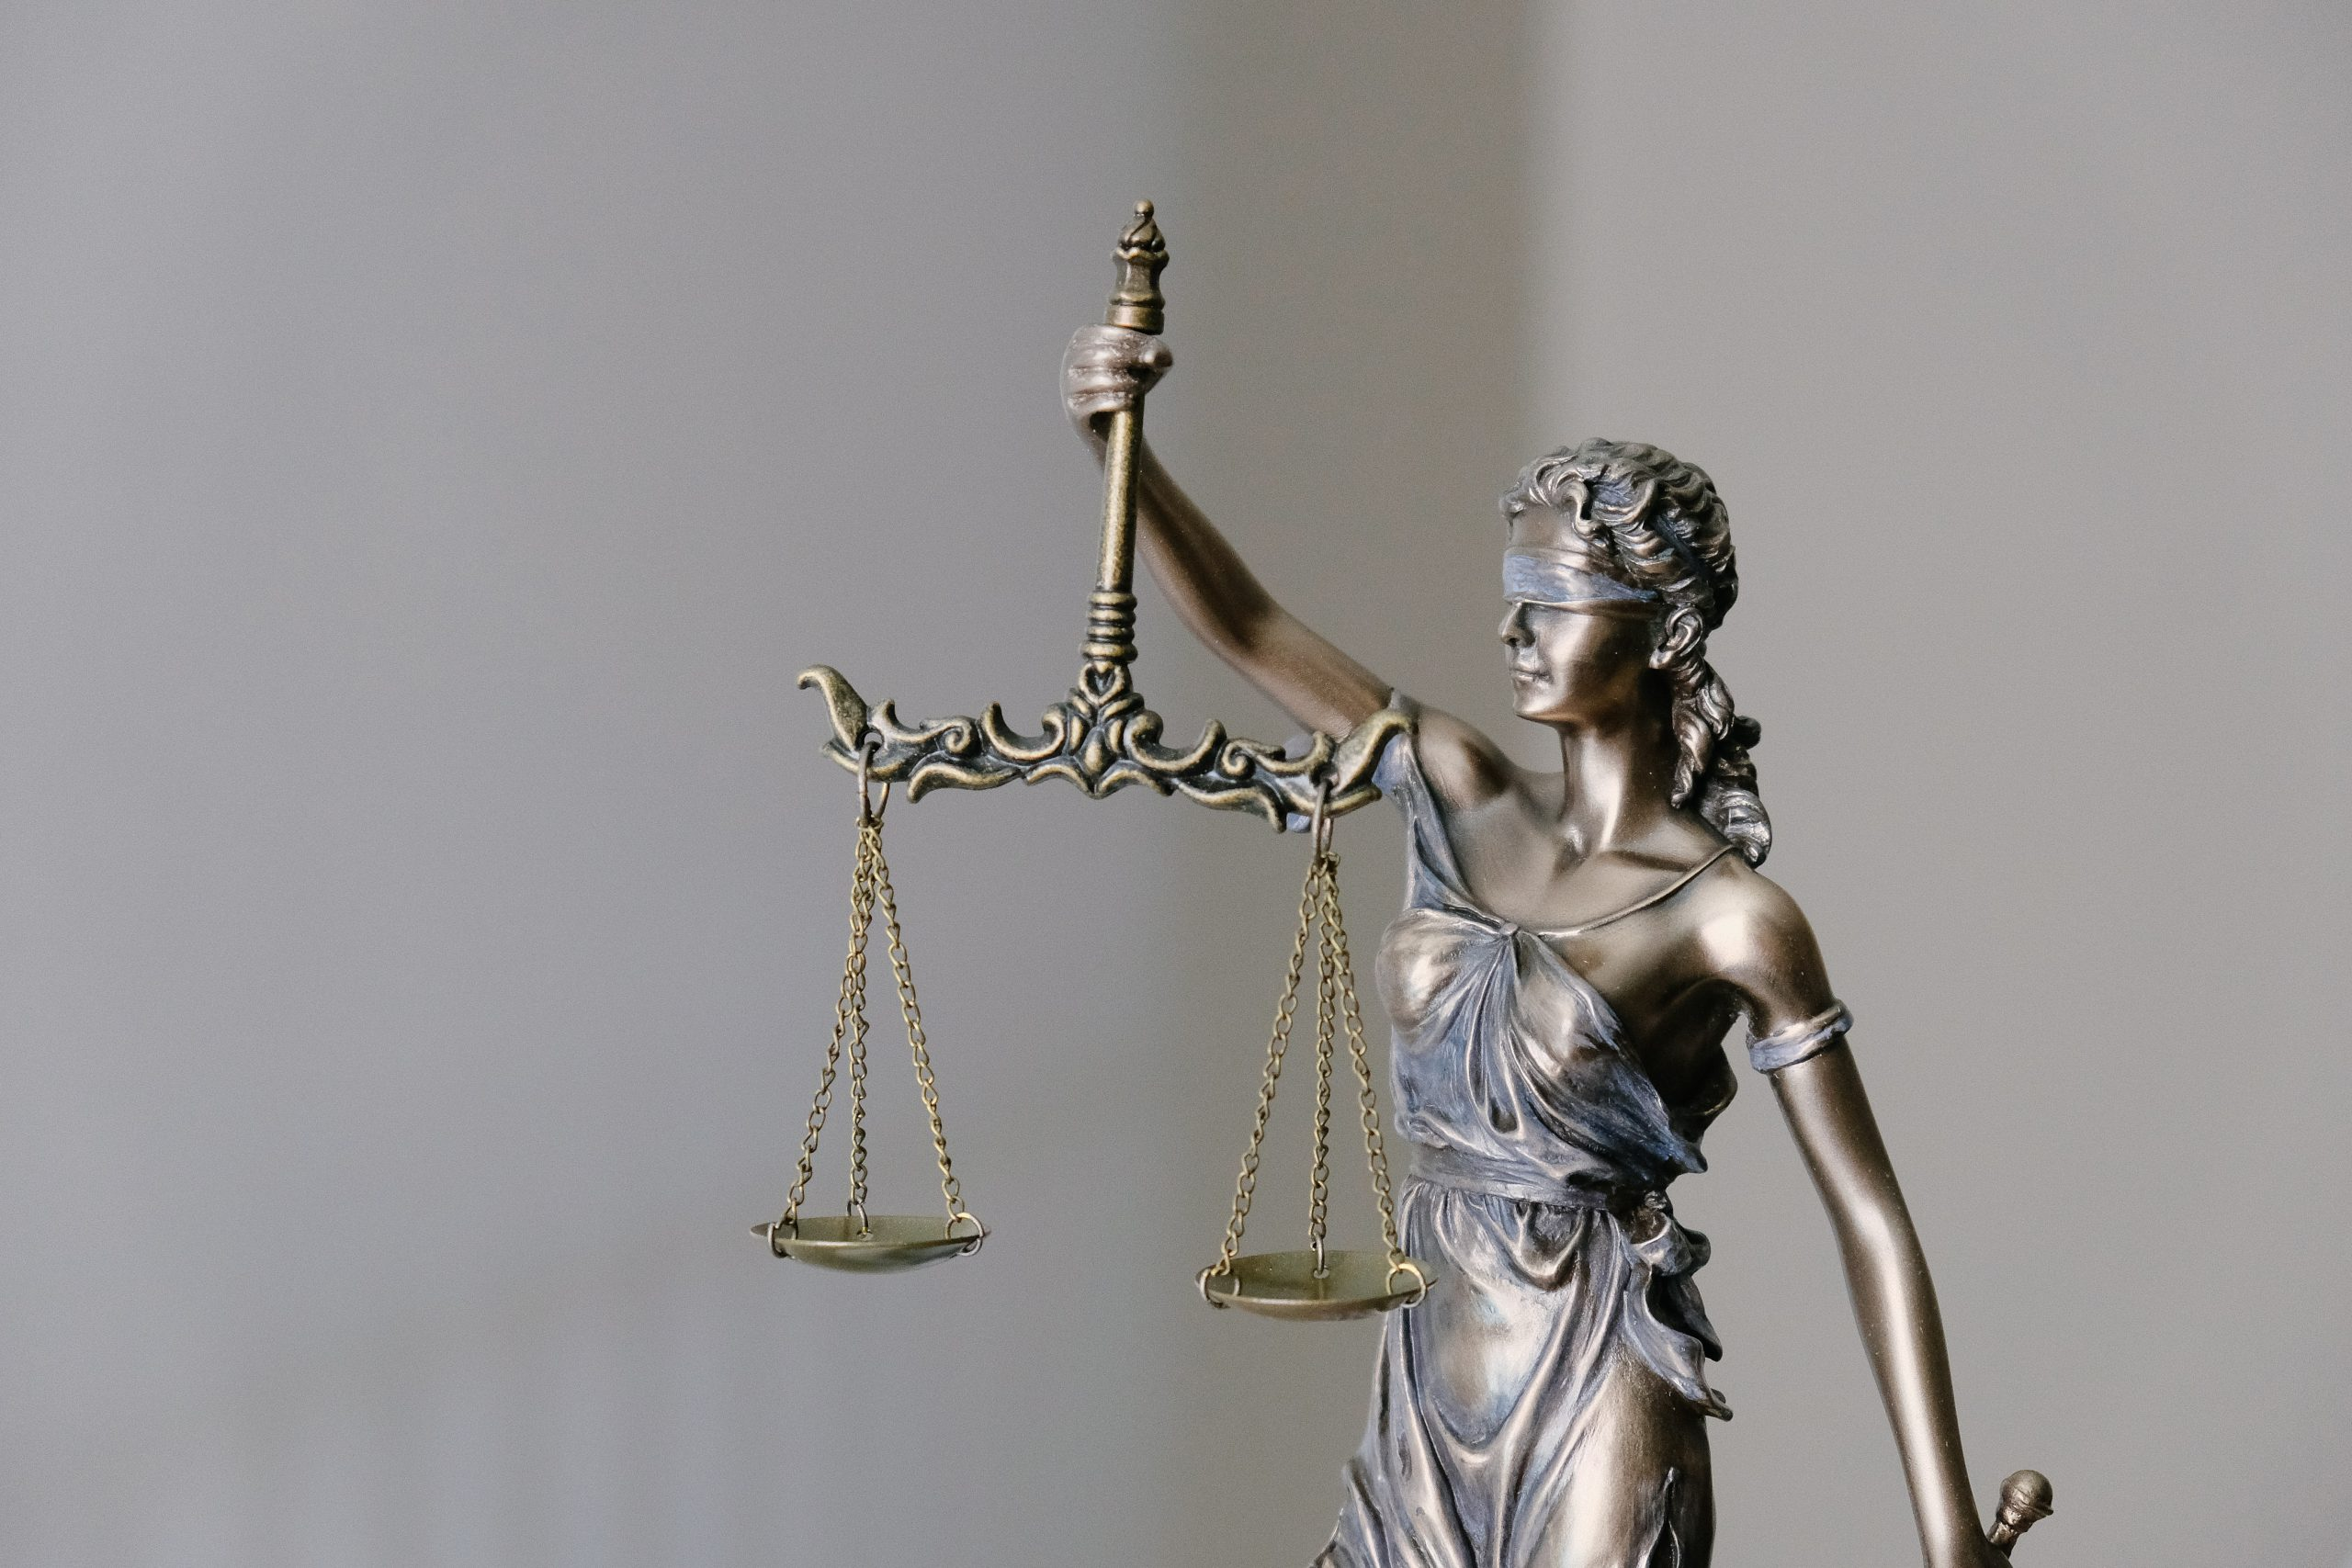 A statue of the lady of justice, holding the scales